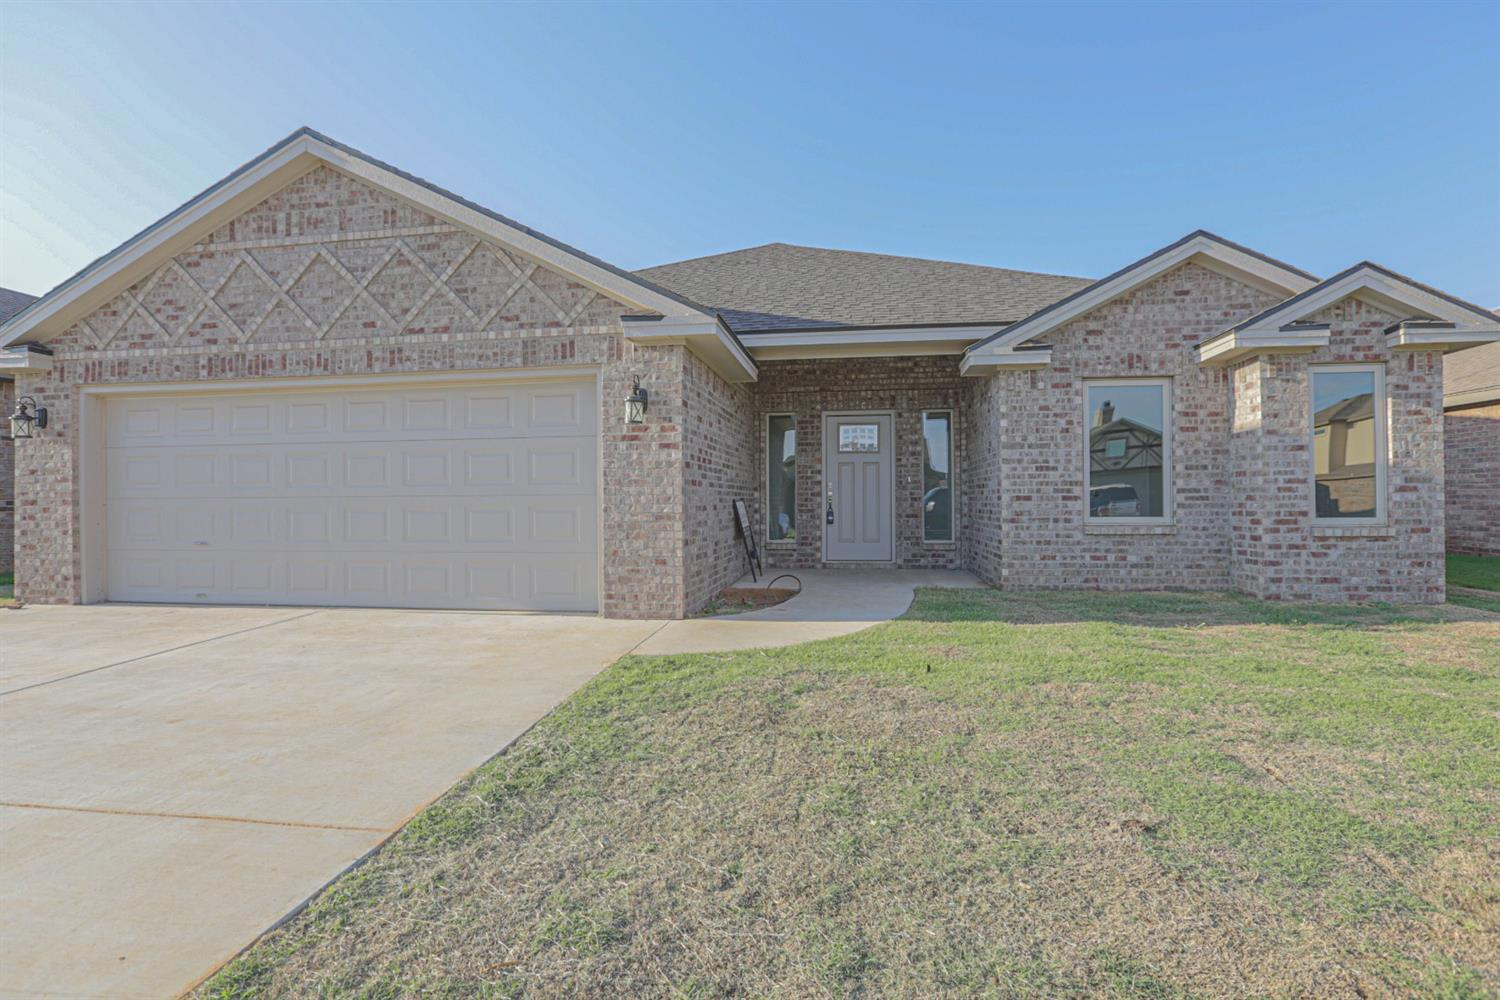 Fresh and Modern, with a wonderful floor plan! Come see this 3/2/2 on a quiet cul-de-sac in Award-winning Frenship school district. You will LOVE the Open concept design ~ features include a large island kitchen with walk-in pantry, mud area coming in from garage, and a large isolated master suite with double-sided fireplace and office nook, and GIANT closet! Built-in custom cabinetry, upgraded lighting, and durable vinyl plank flooring make this home a 10+. It even has recirculating hot water! Come see ~ Call it HOME!